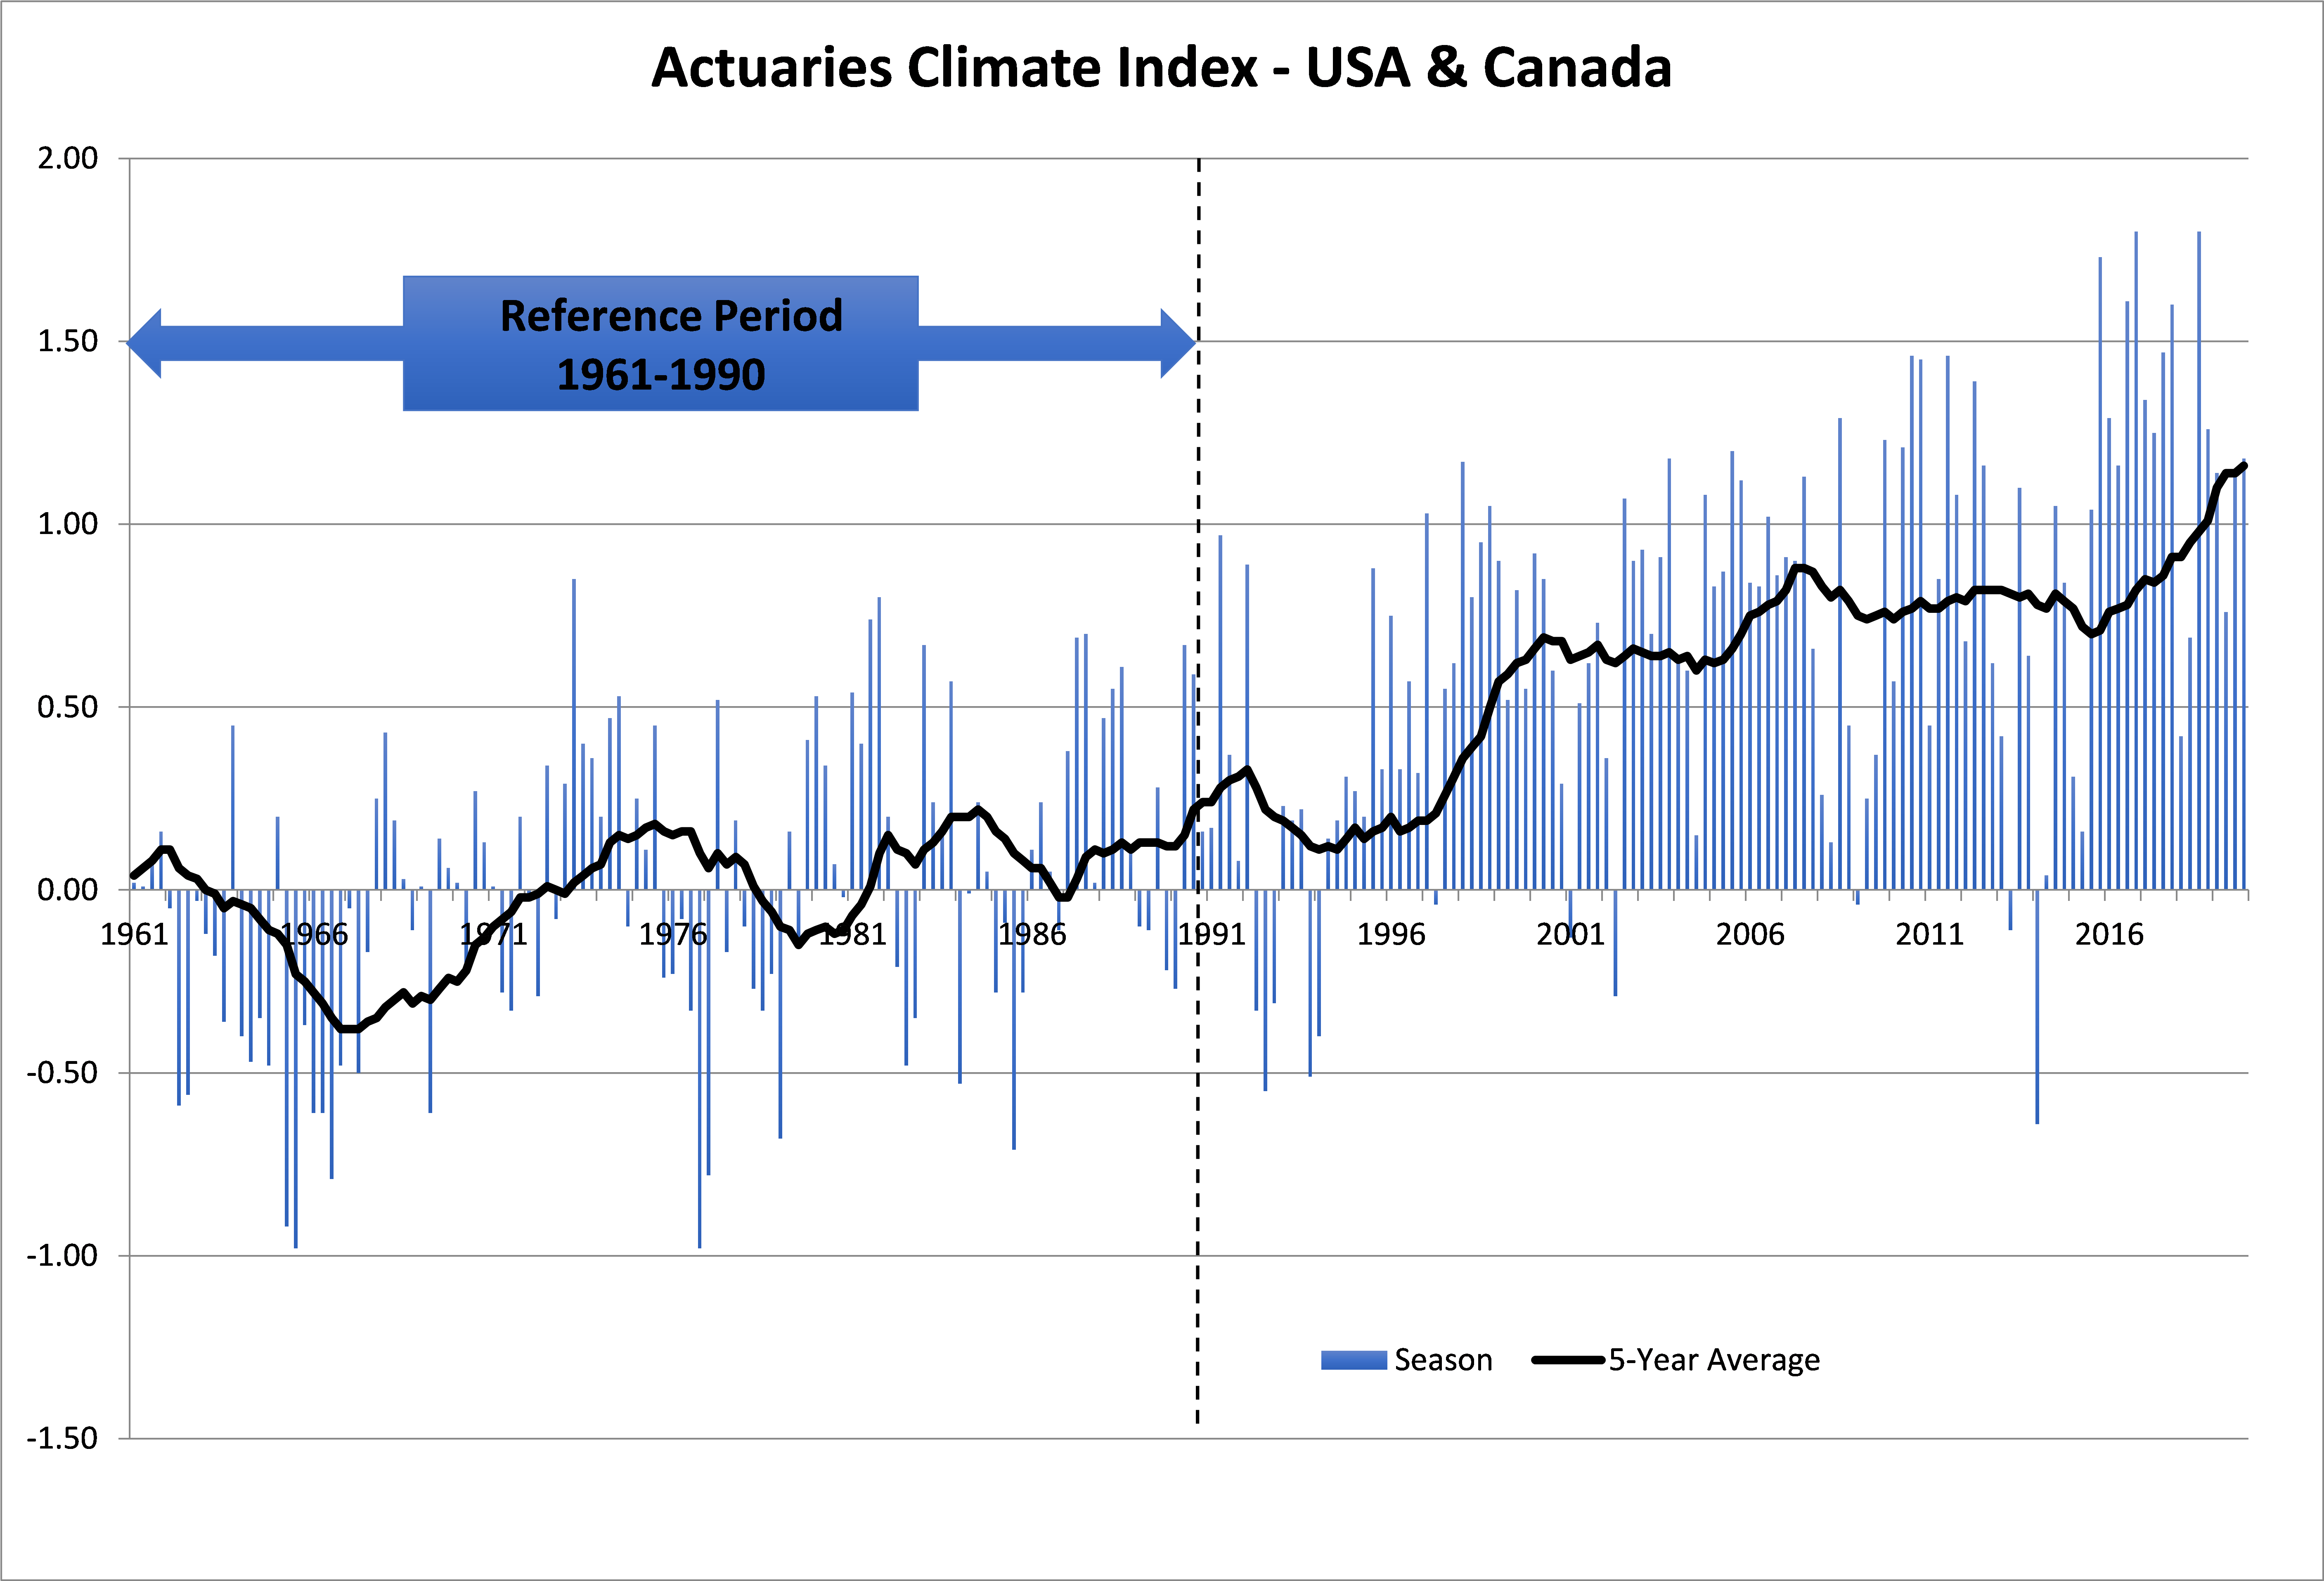 Data Update to the Actuaries Climate Index